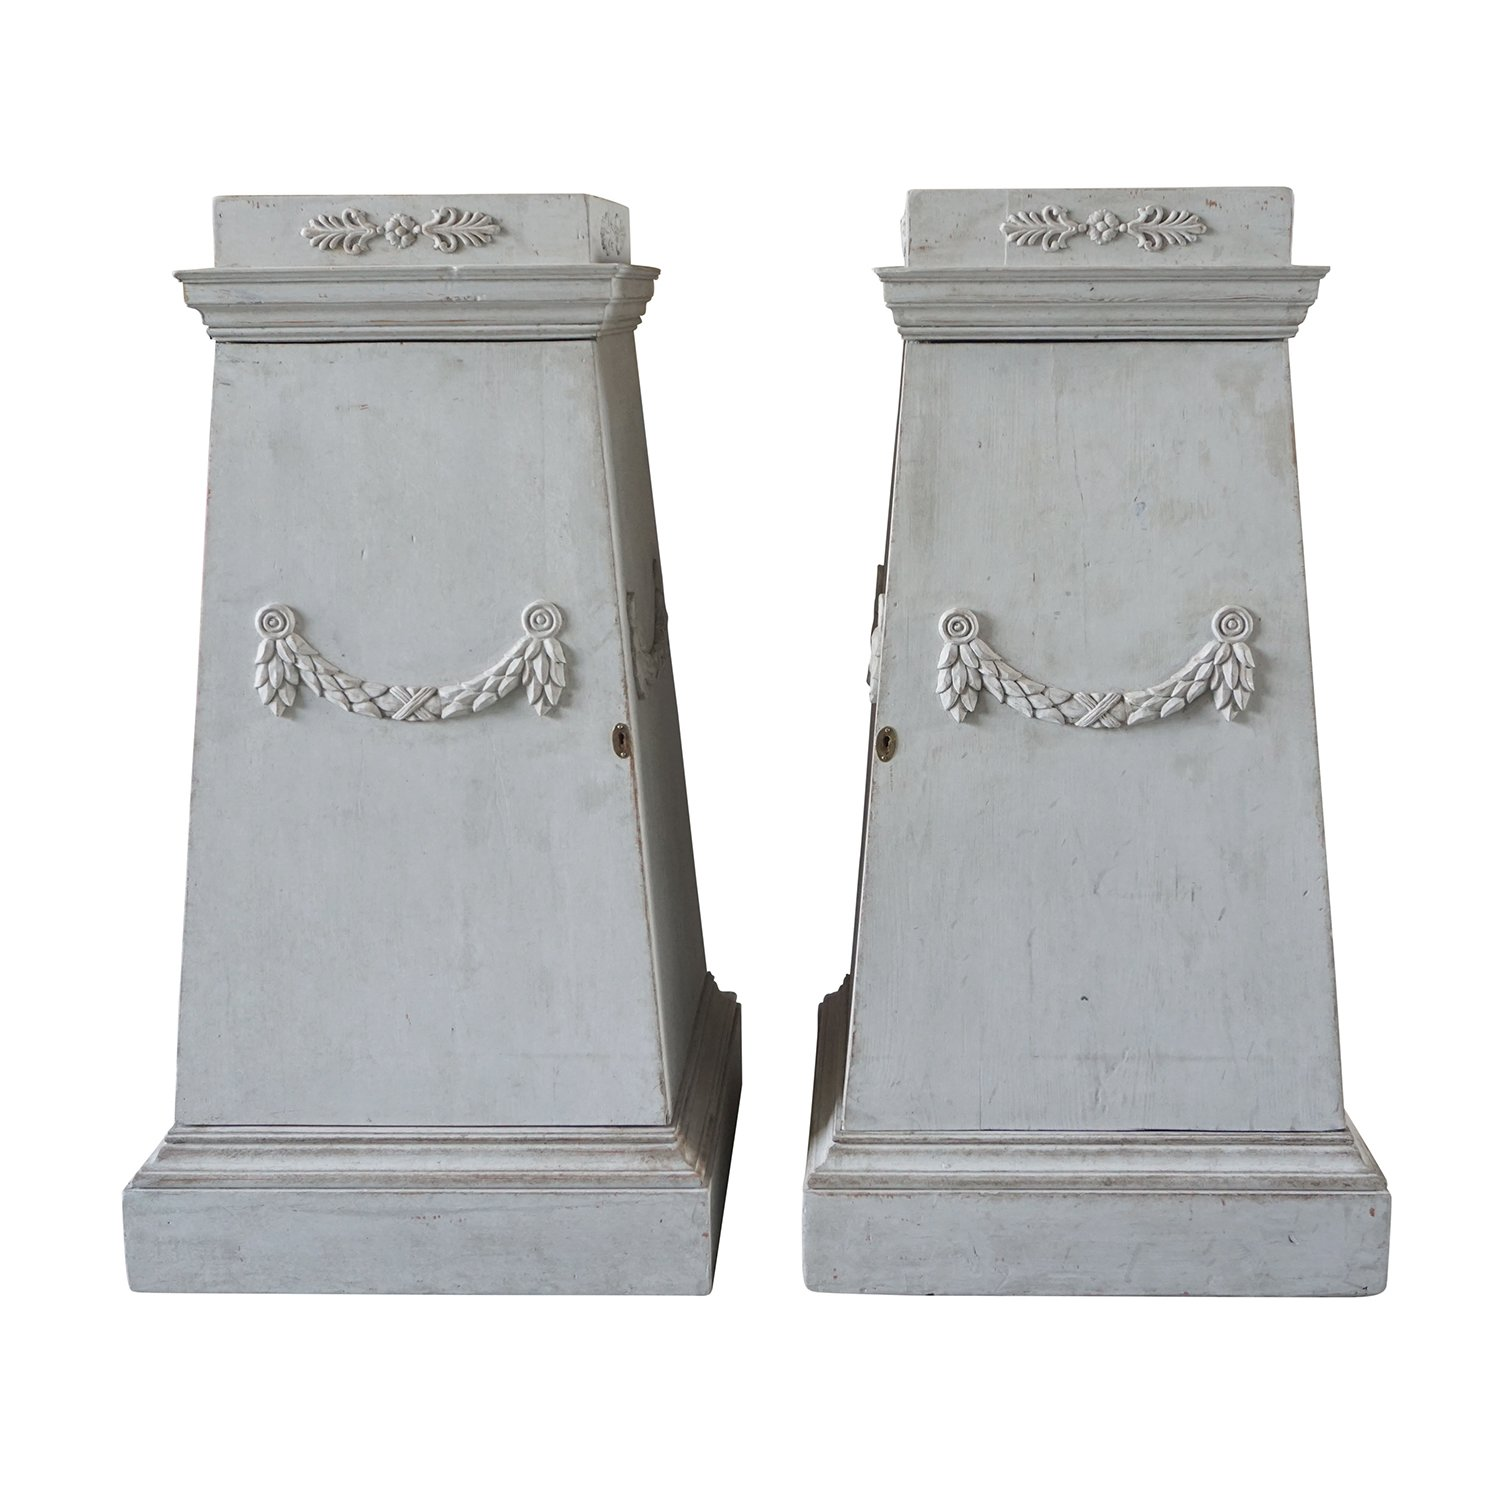 Pair of Gustavian Pedestals